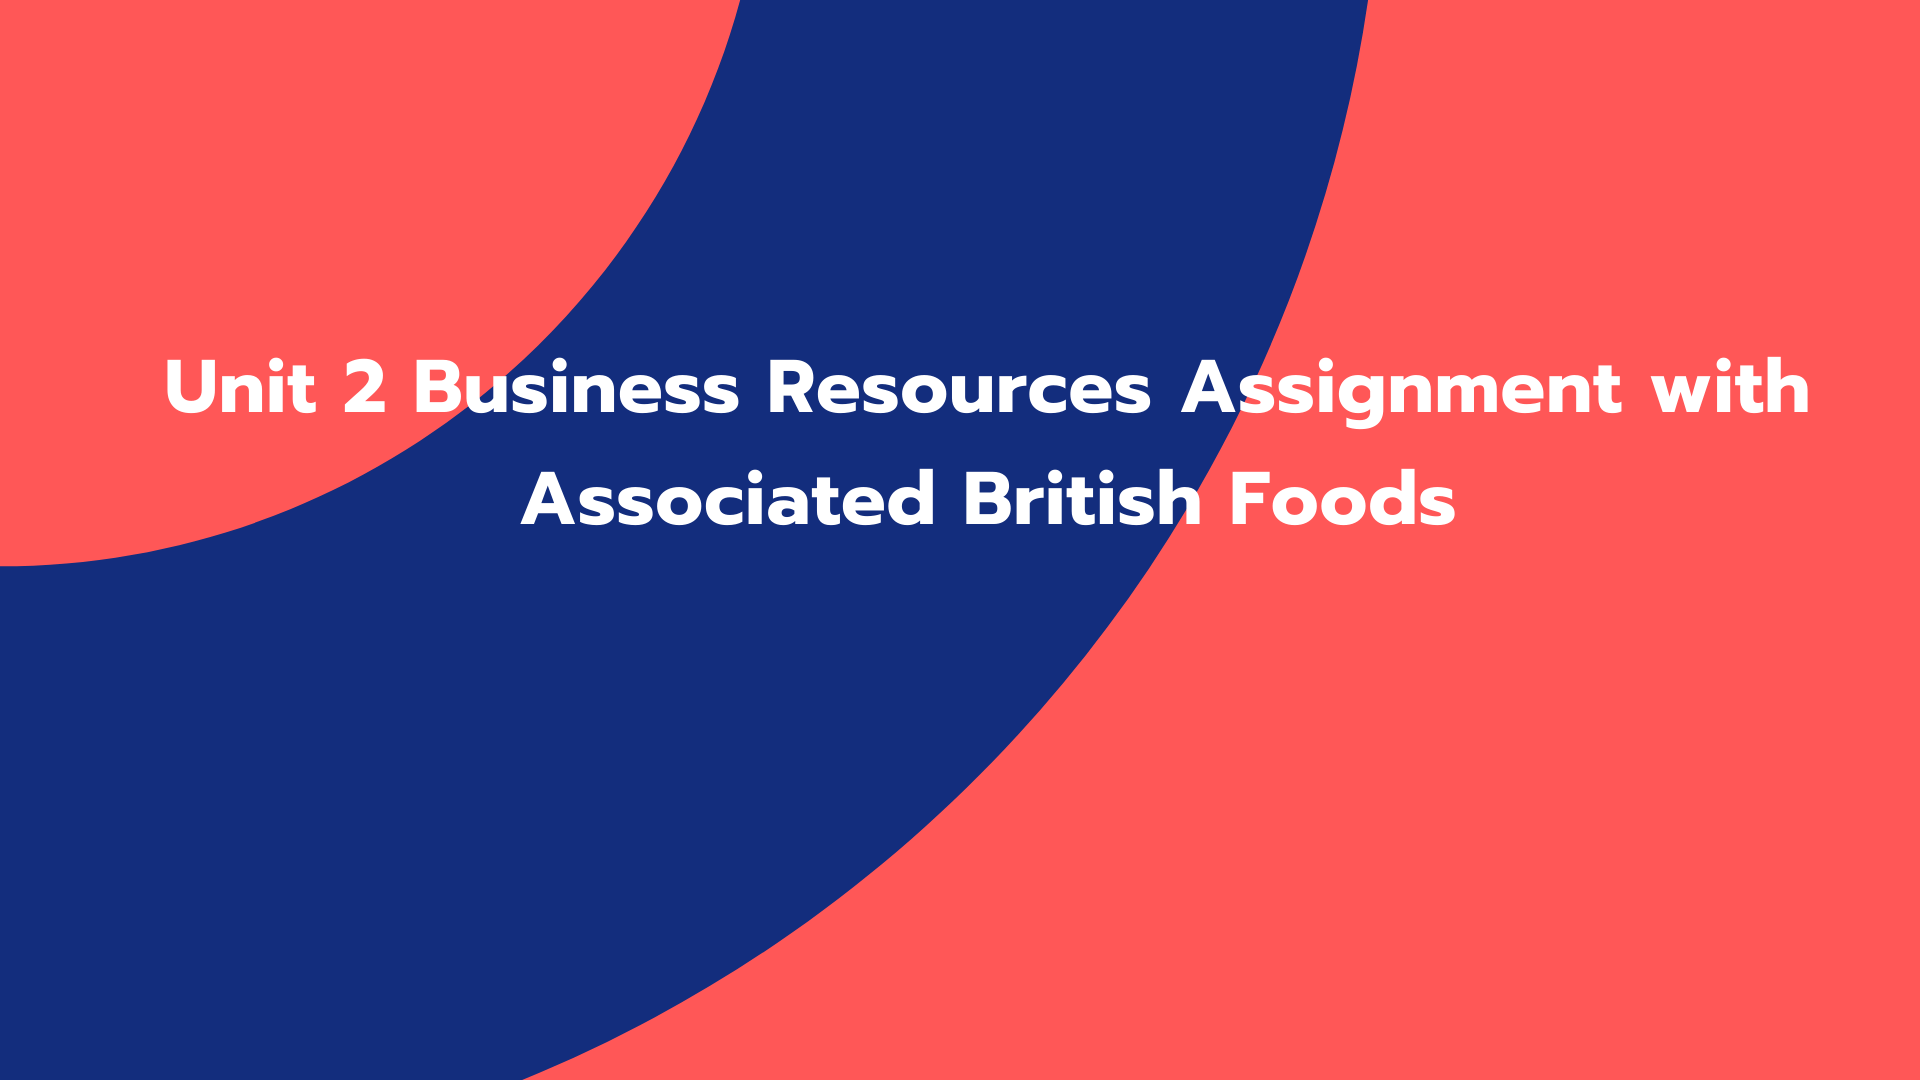 Unit 2 Business Resources Assignment with Associated British Foods